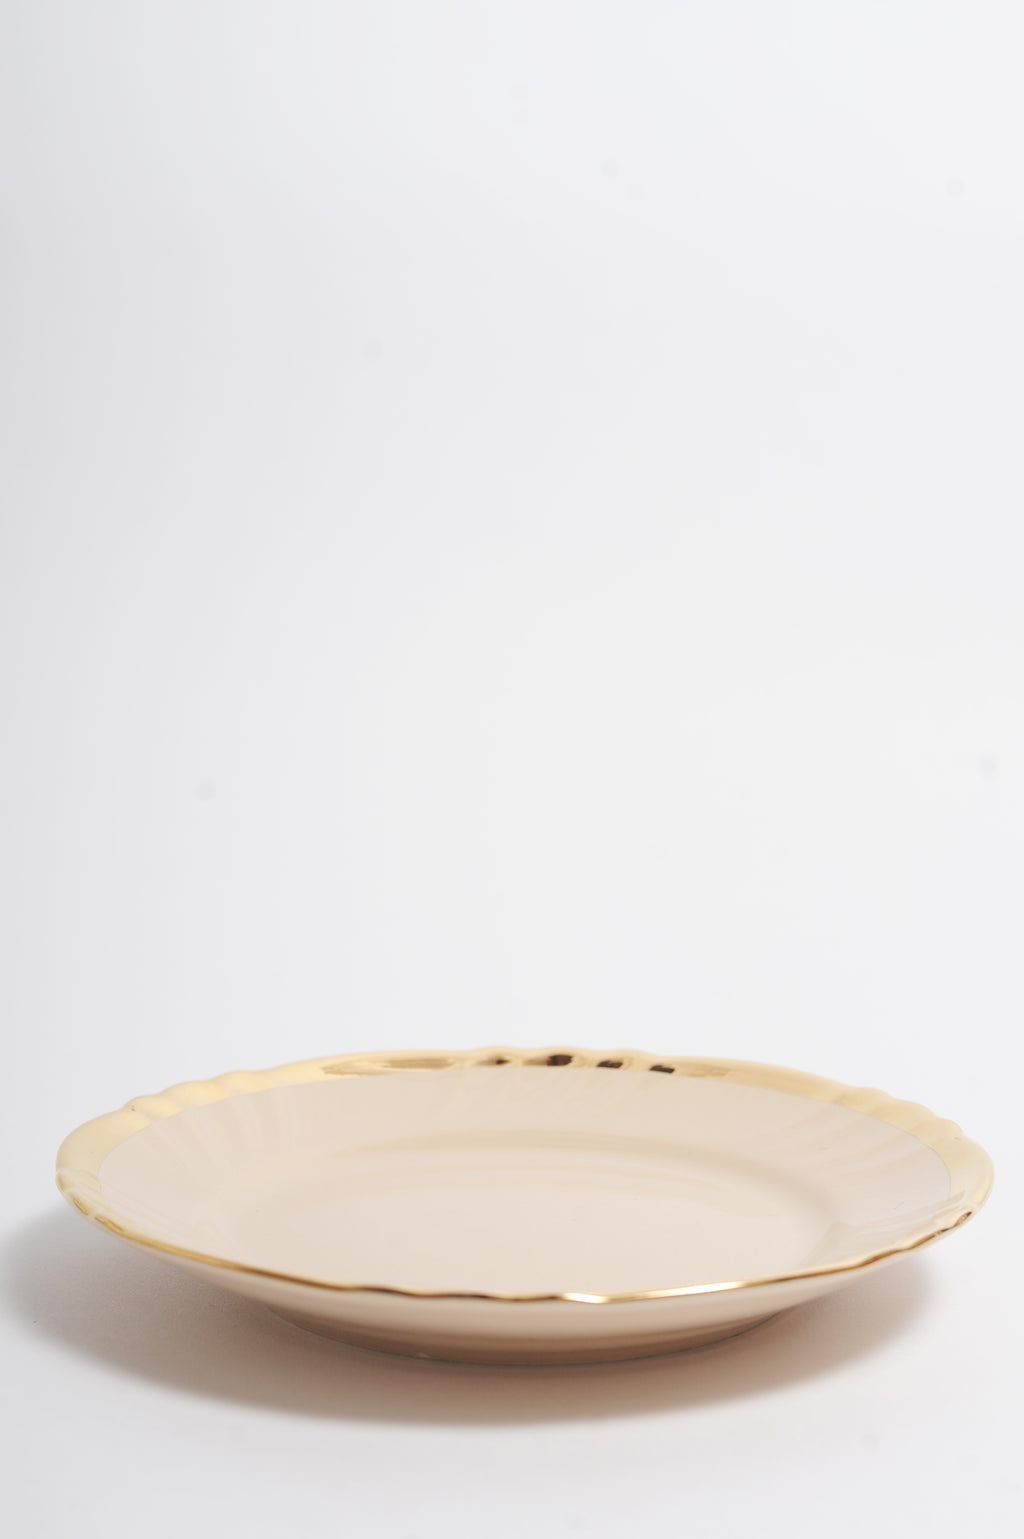 Gold Rim Fruit Plate in Powder